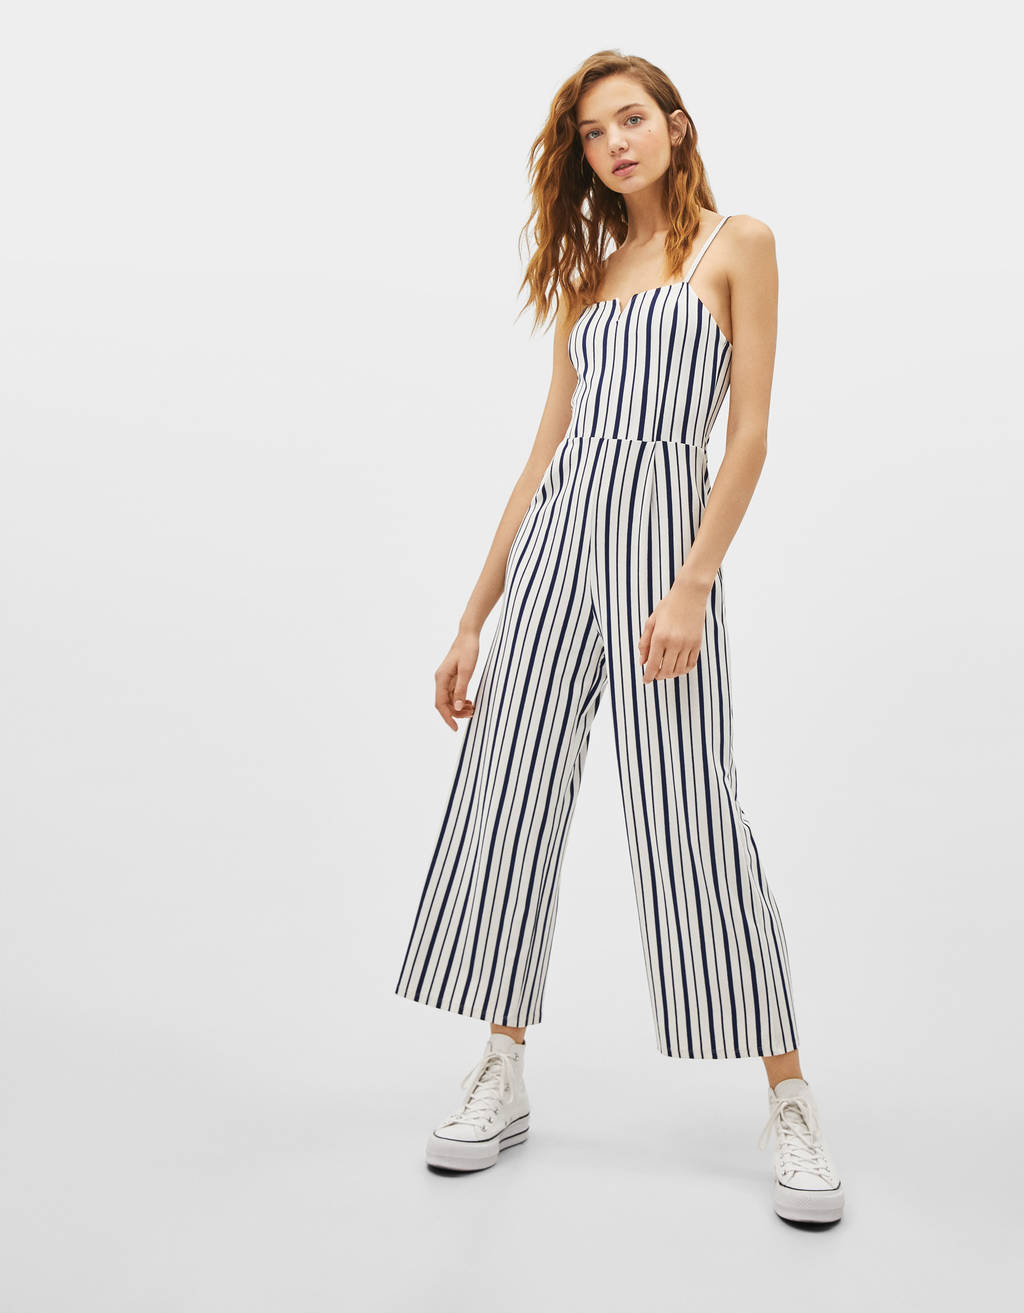 Striped long jumpsuit with square-cut neckline